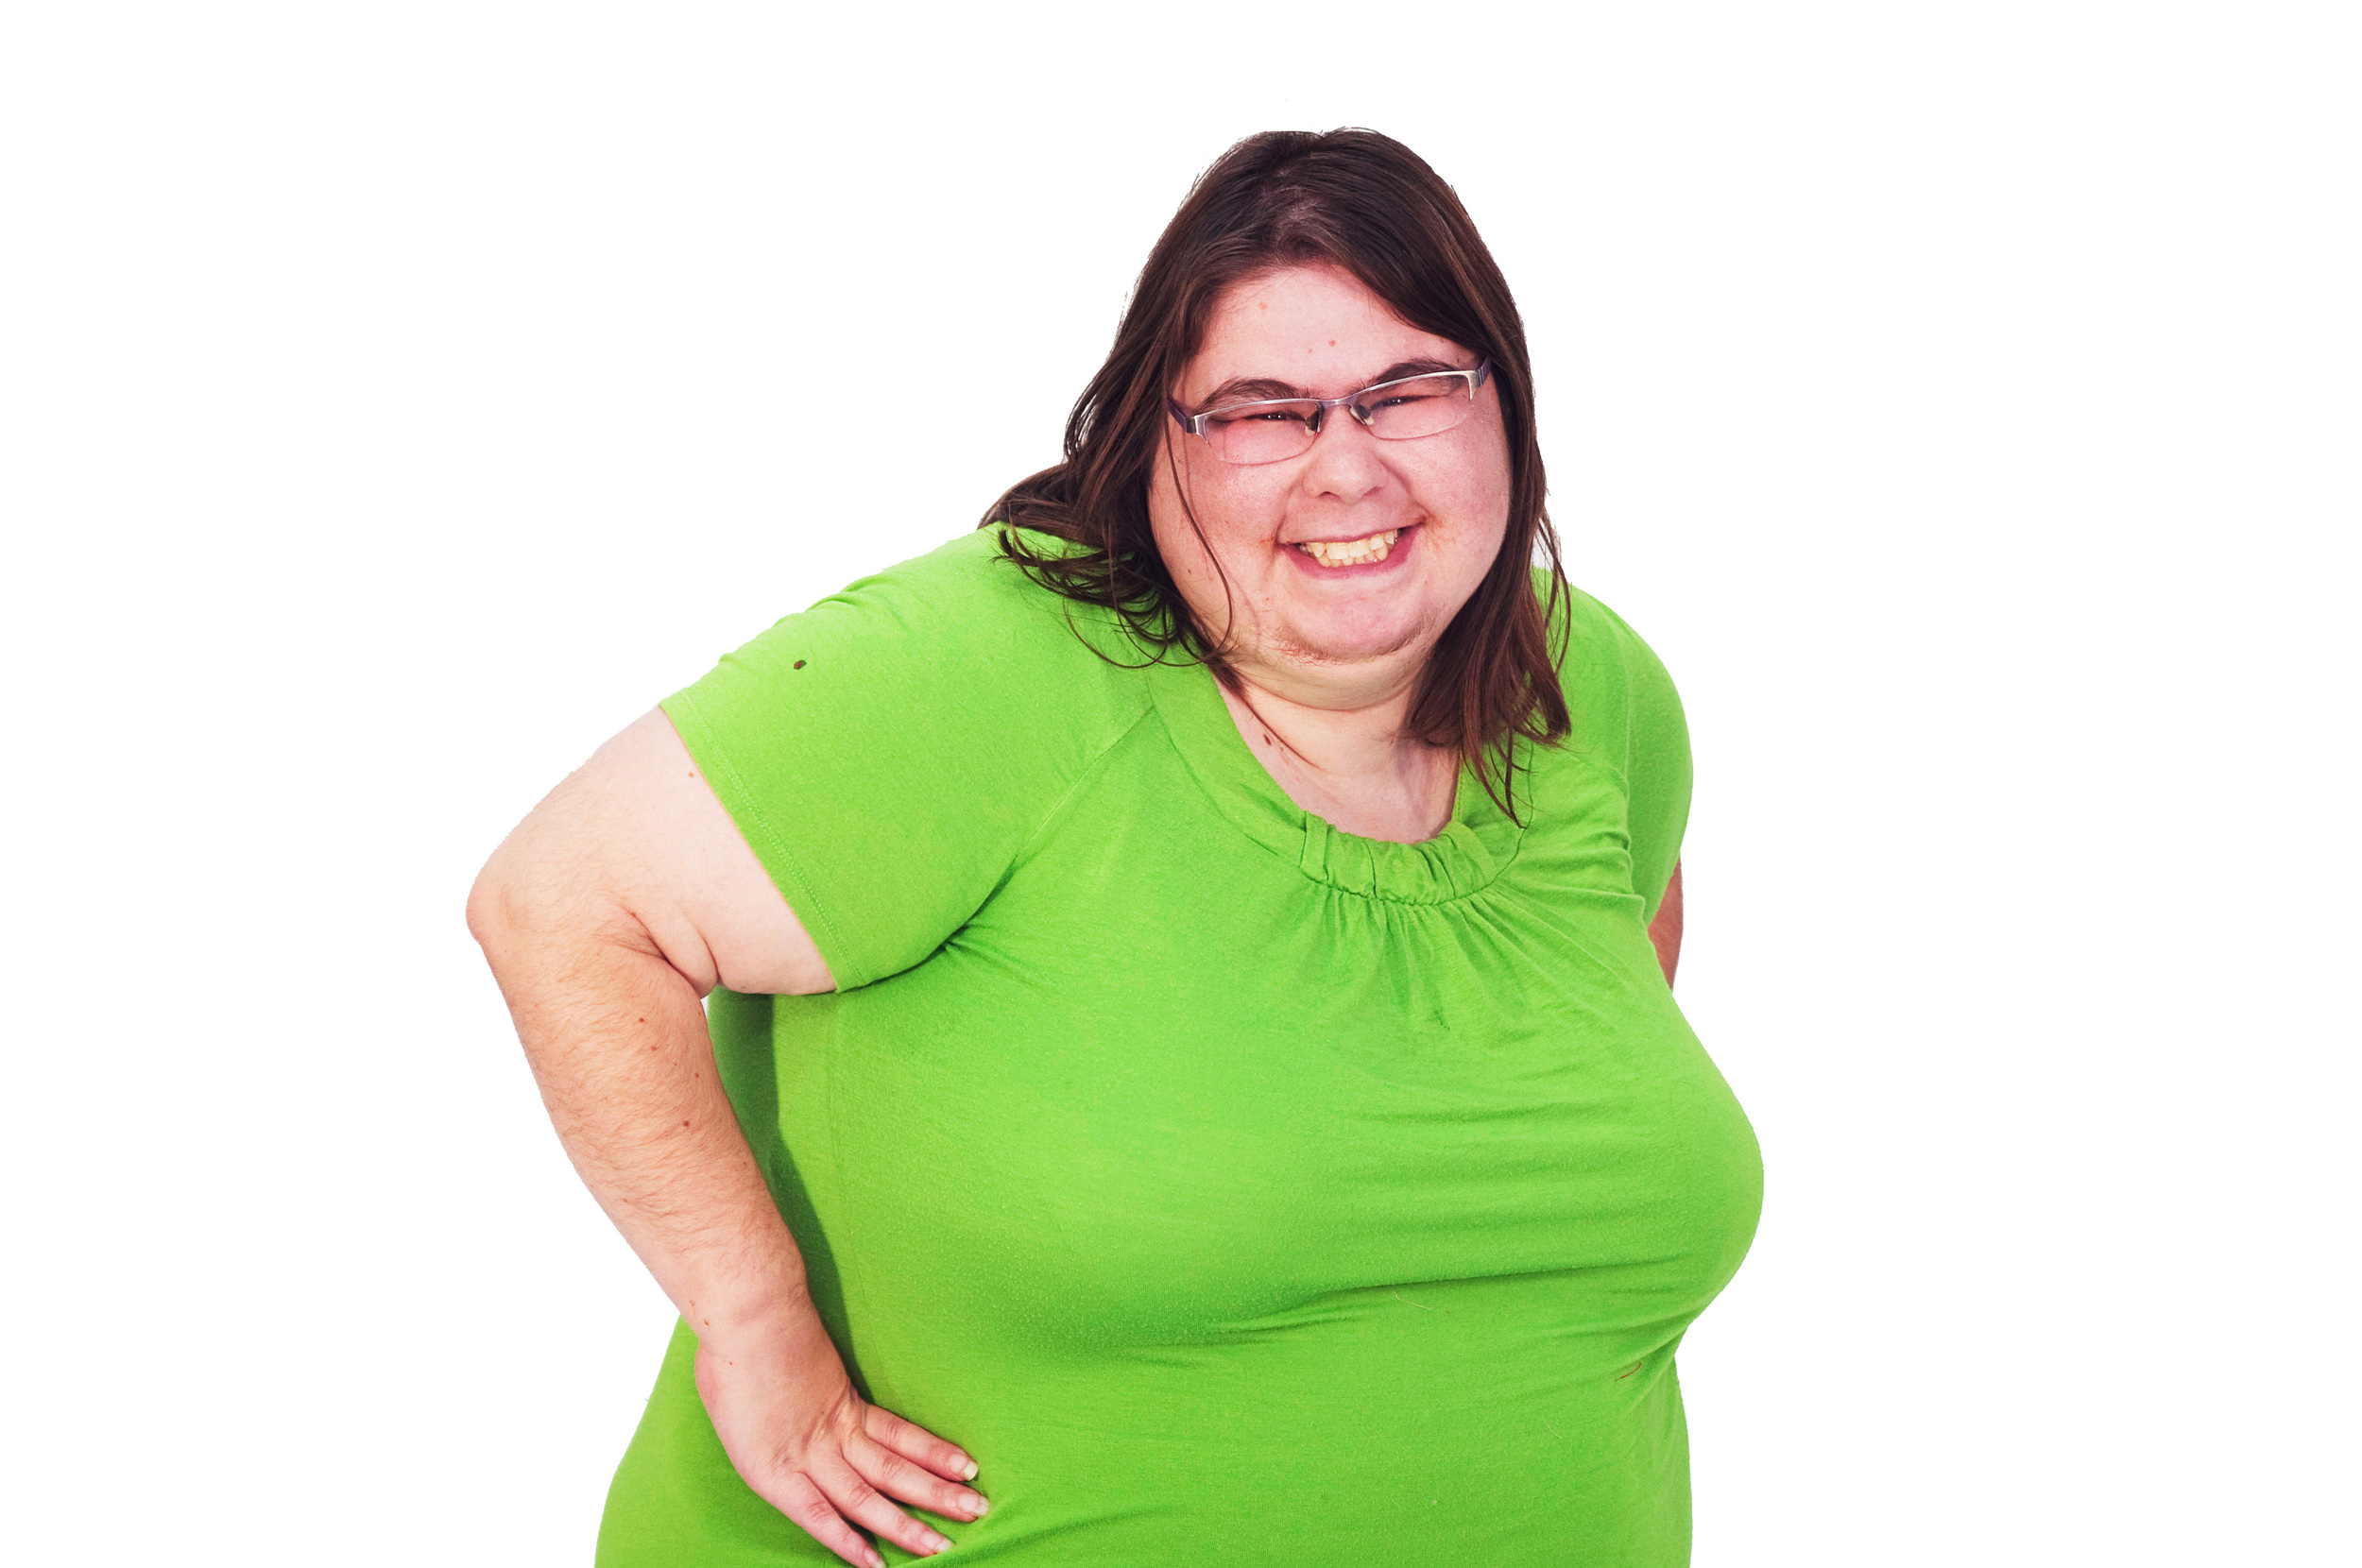 Smiling woman in green shirt